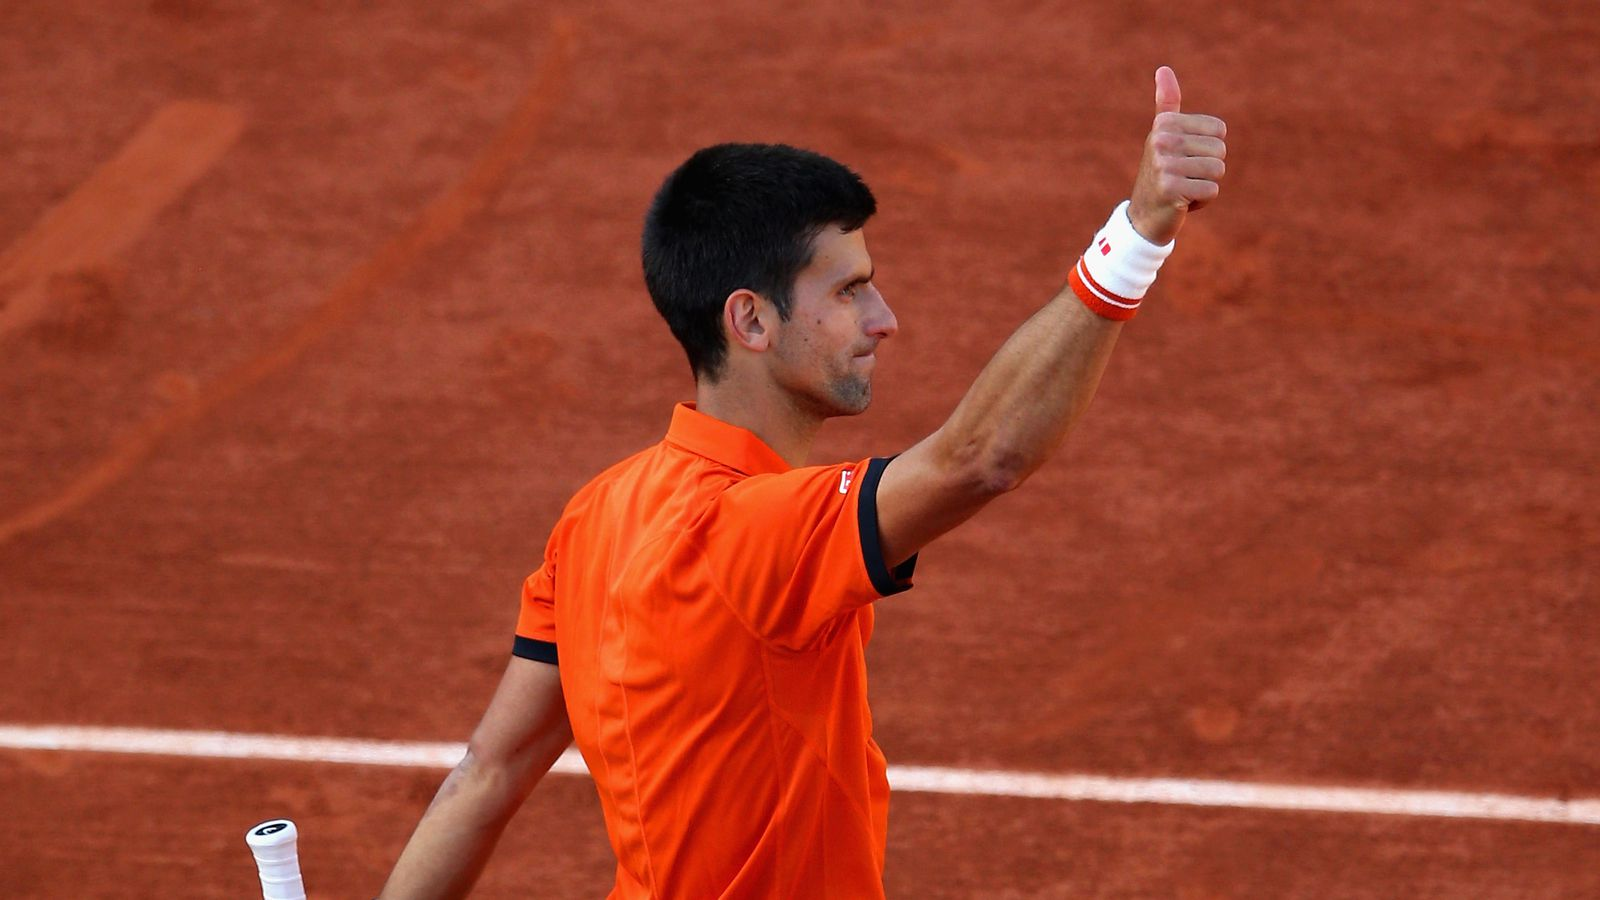 french open 2015 tv schedule and matches for wednesday at. Black Bedroom Furniture Sets. Home Design Ideas